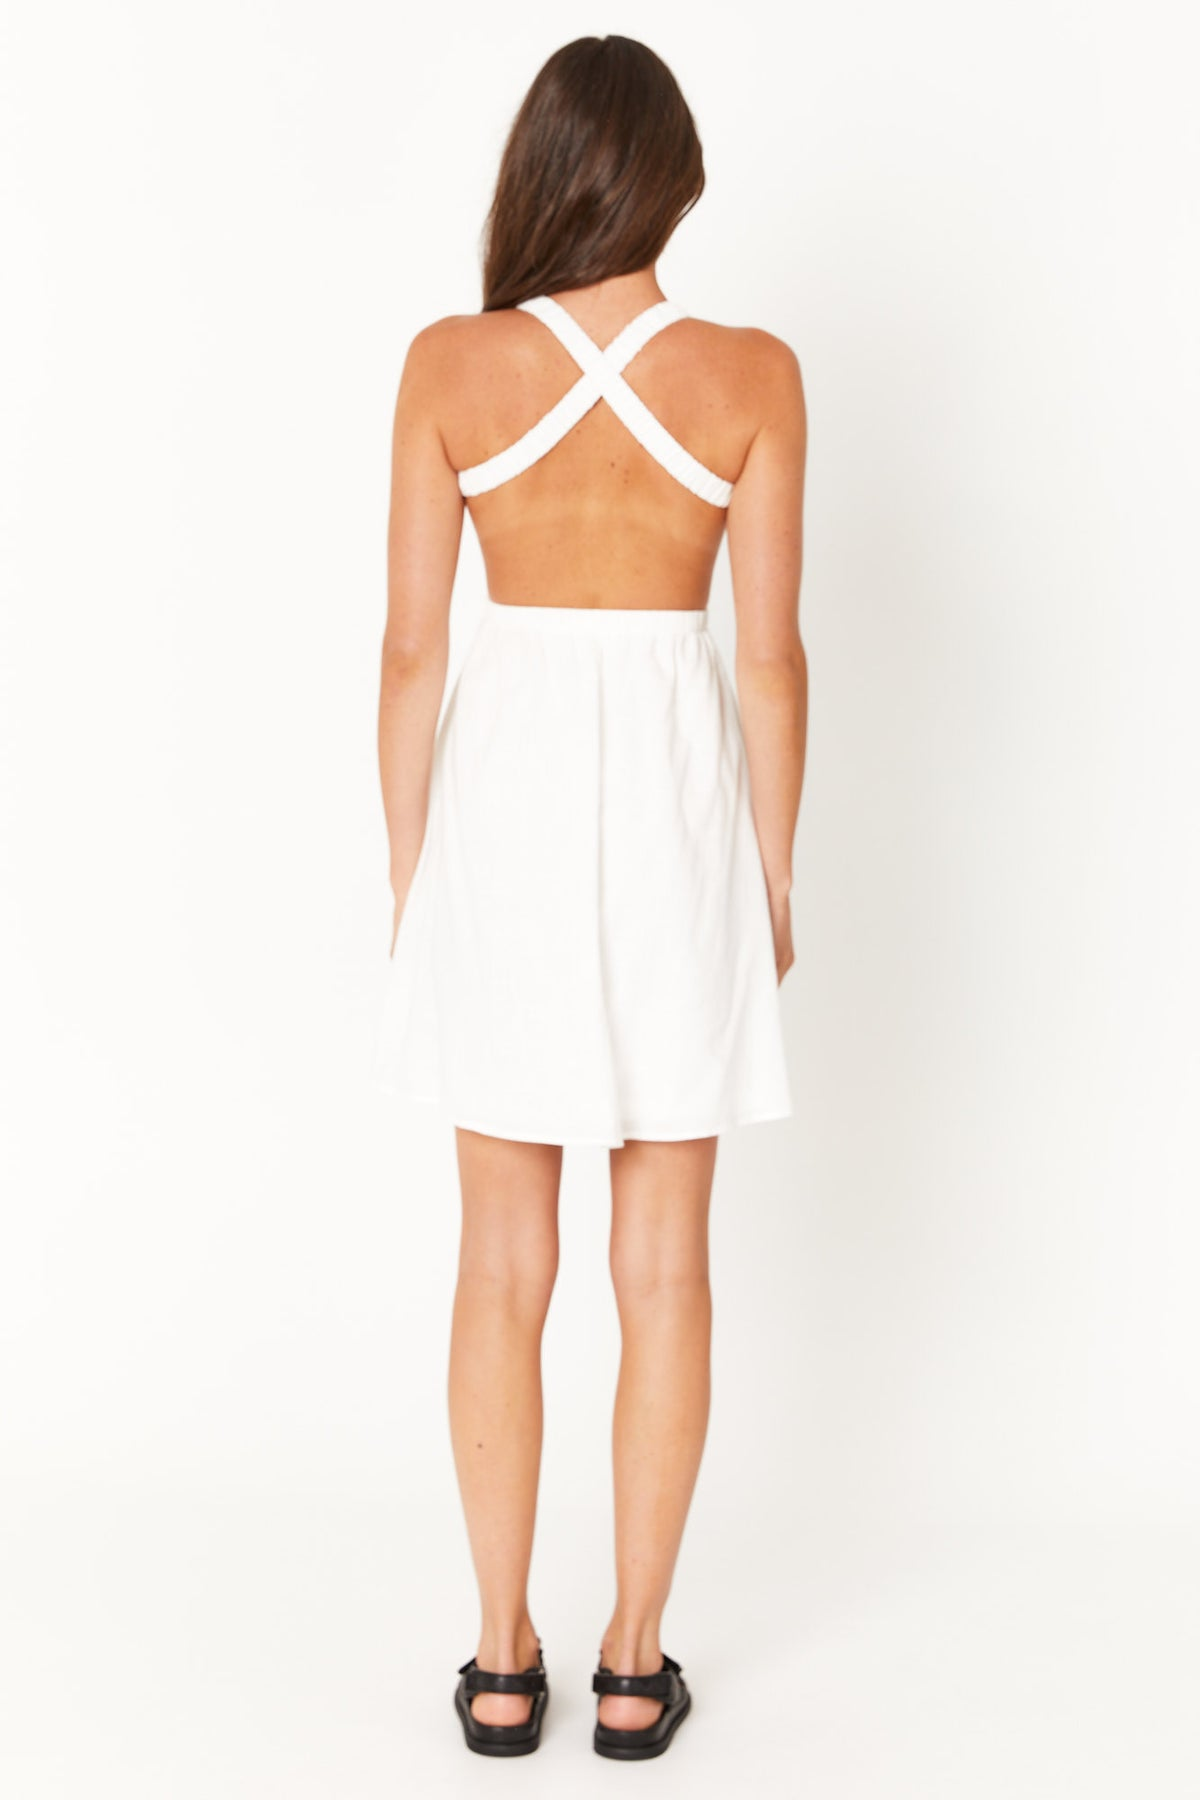 Elsie Sun Dress White